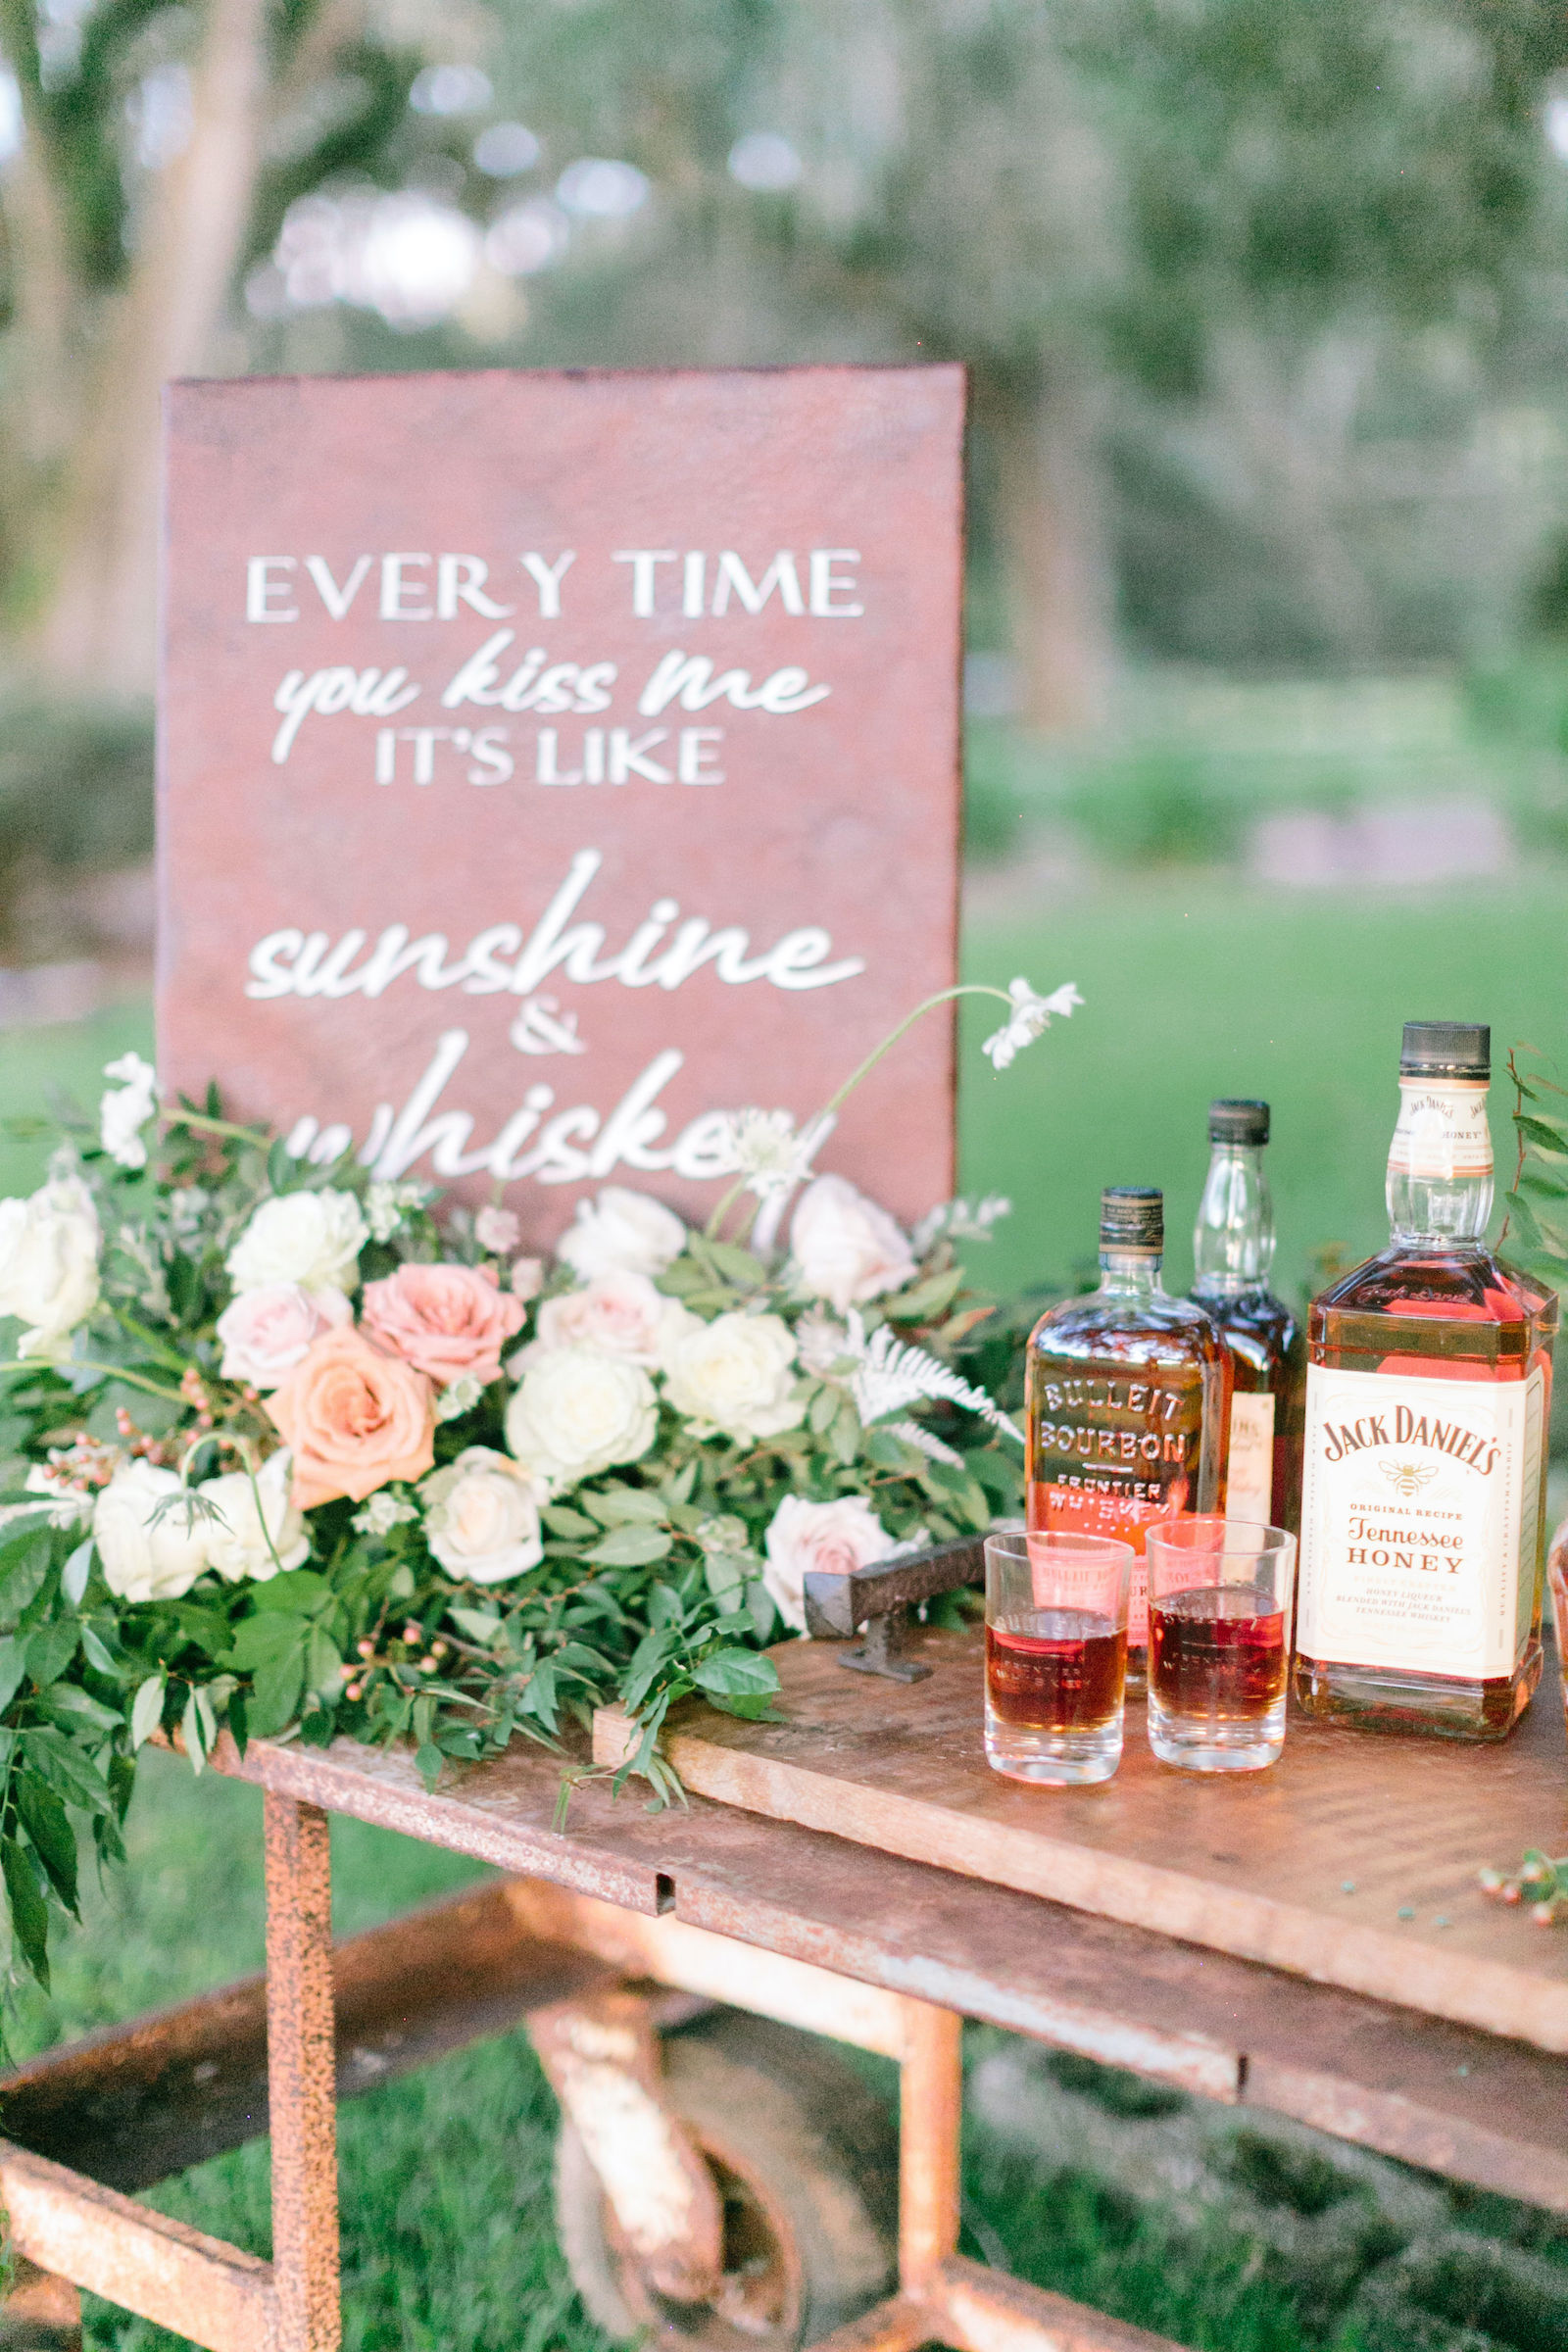 Outdoor Wedding Unique Whiskey Bar | Every Time You Kiss Me It's Like Sunshine And Whiskey Sign